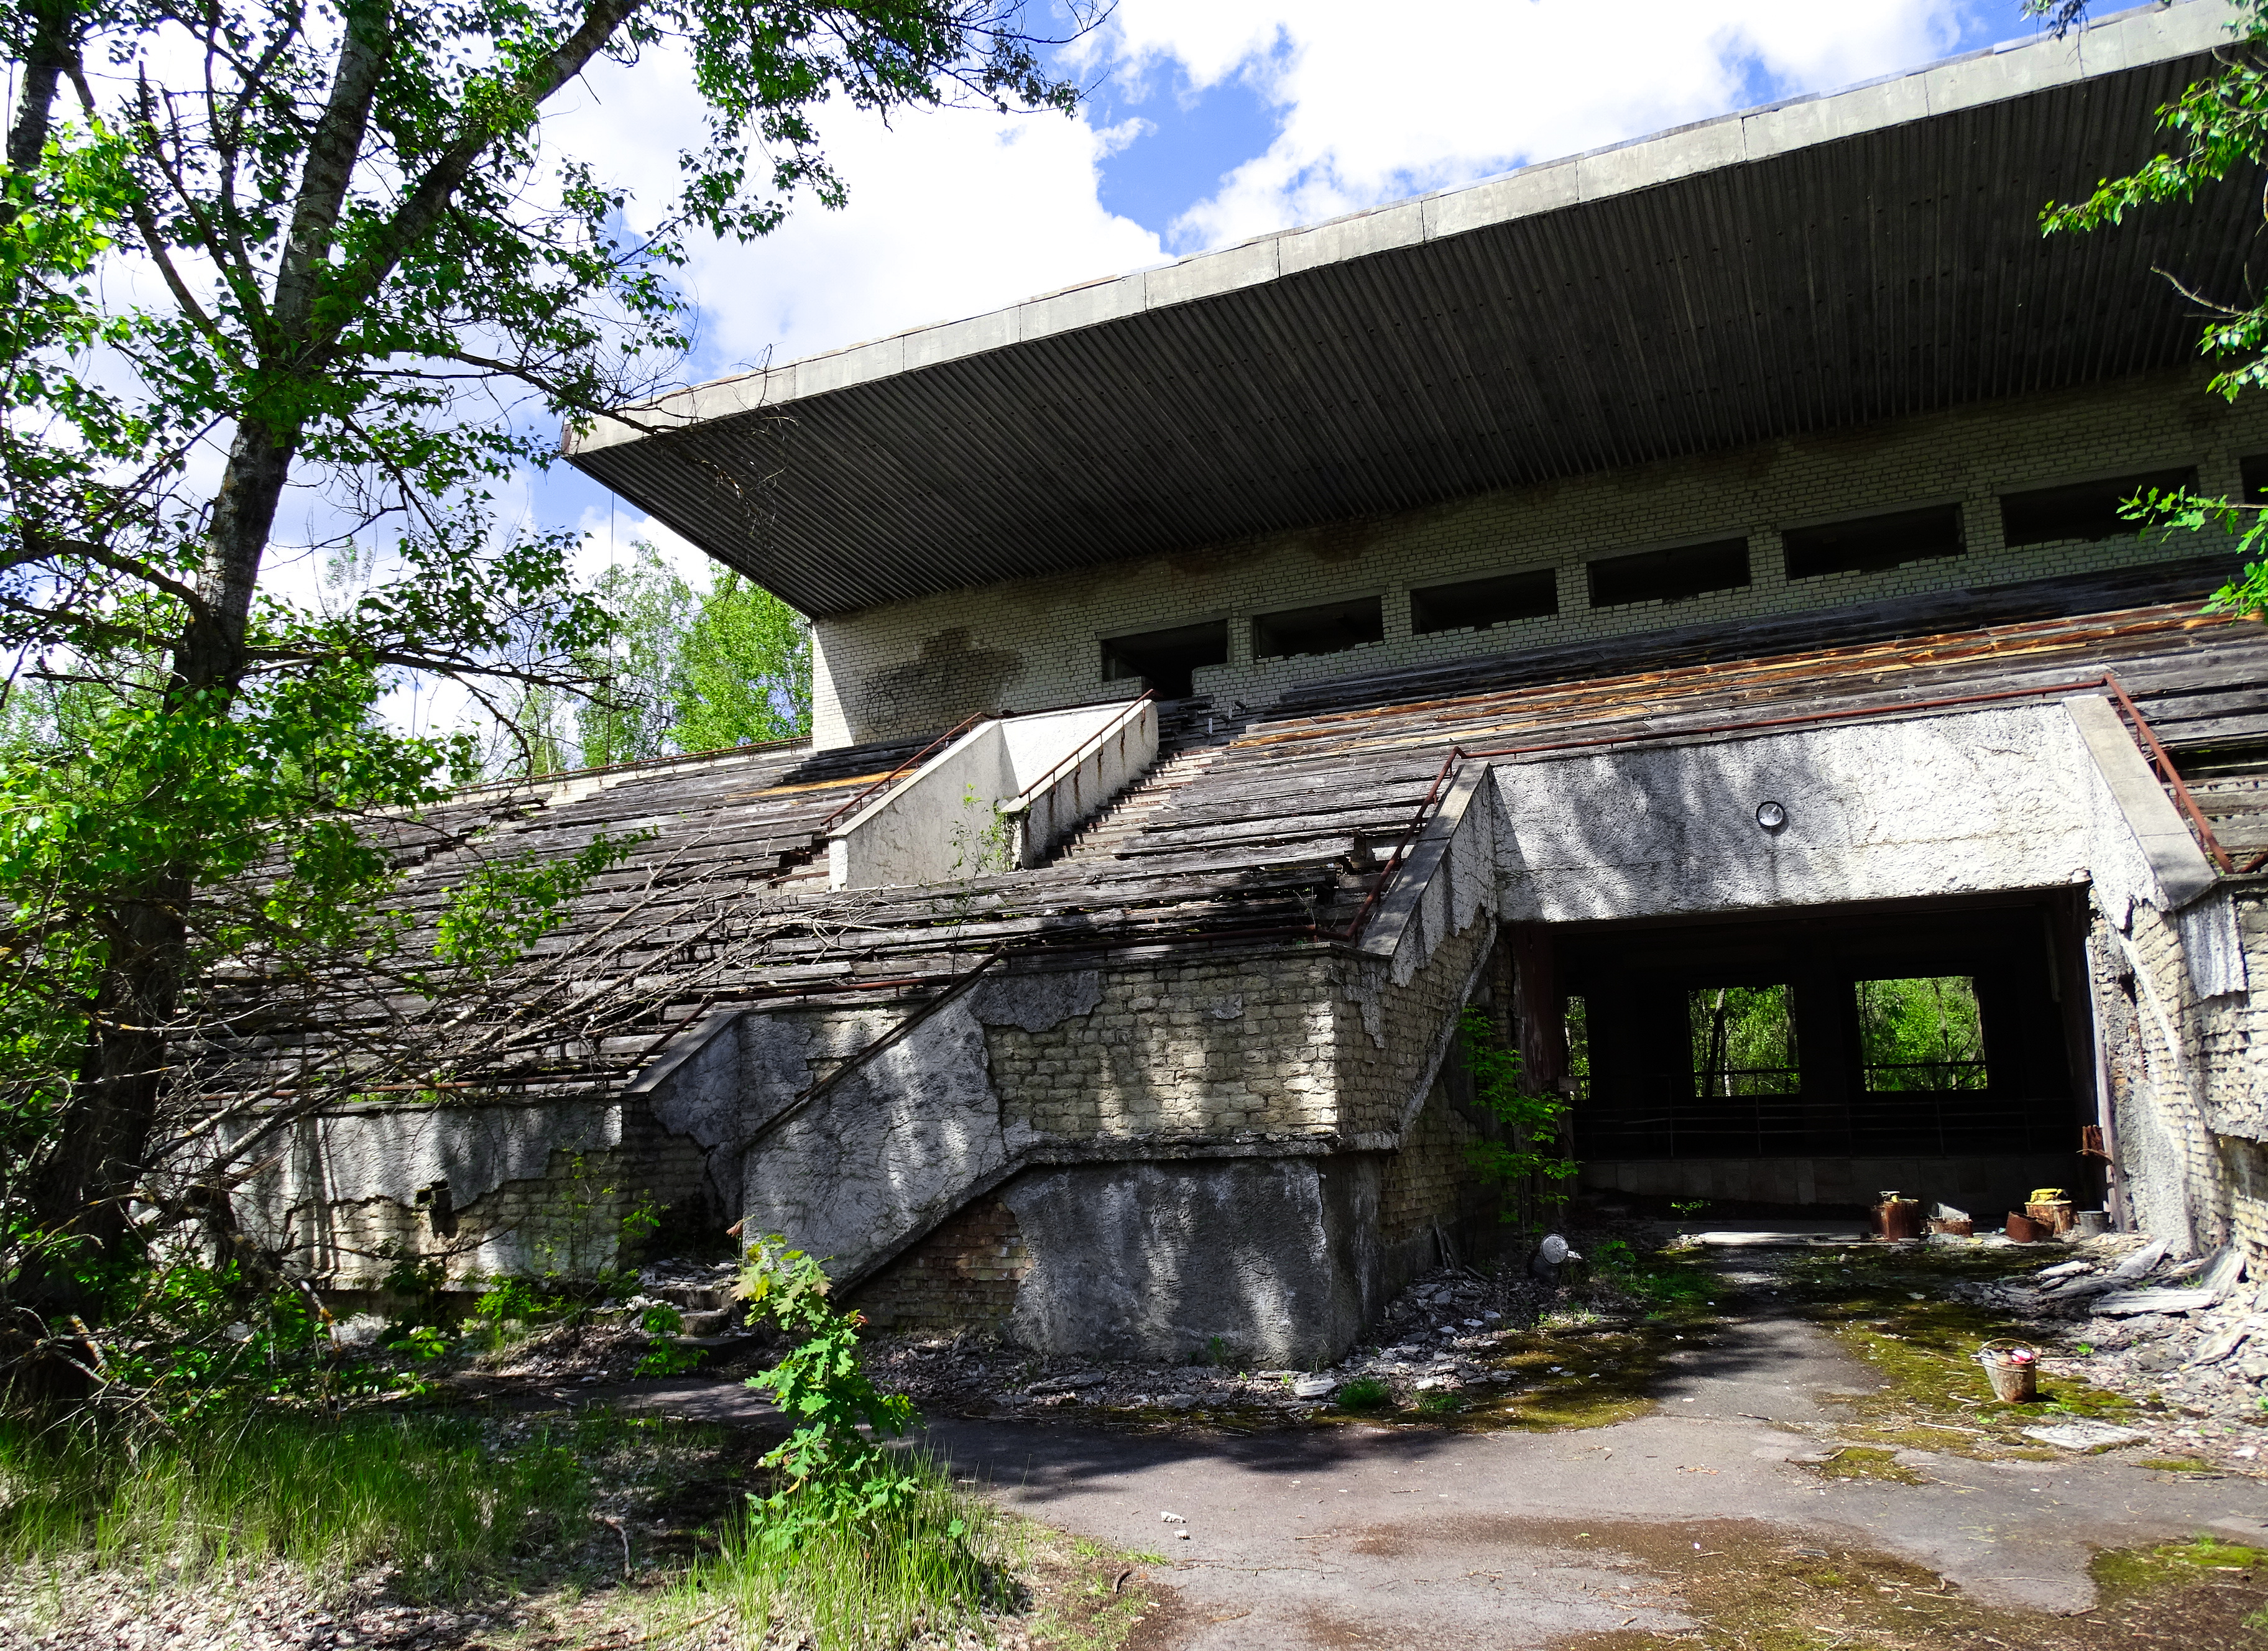 The ghosts of Pripyat: how the Chernobyl disaster ended the